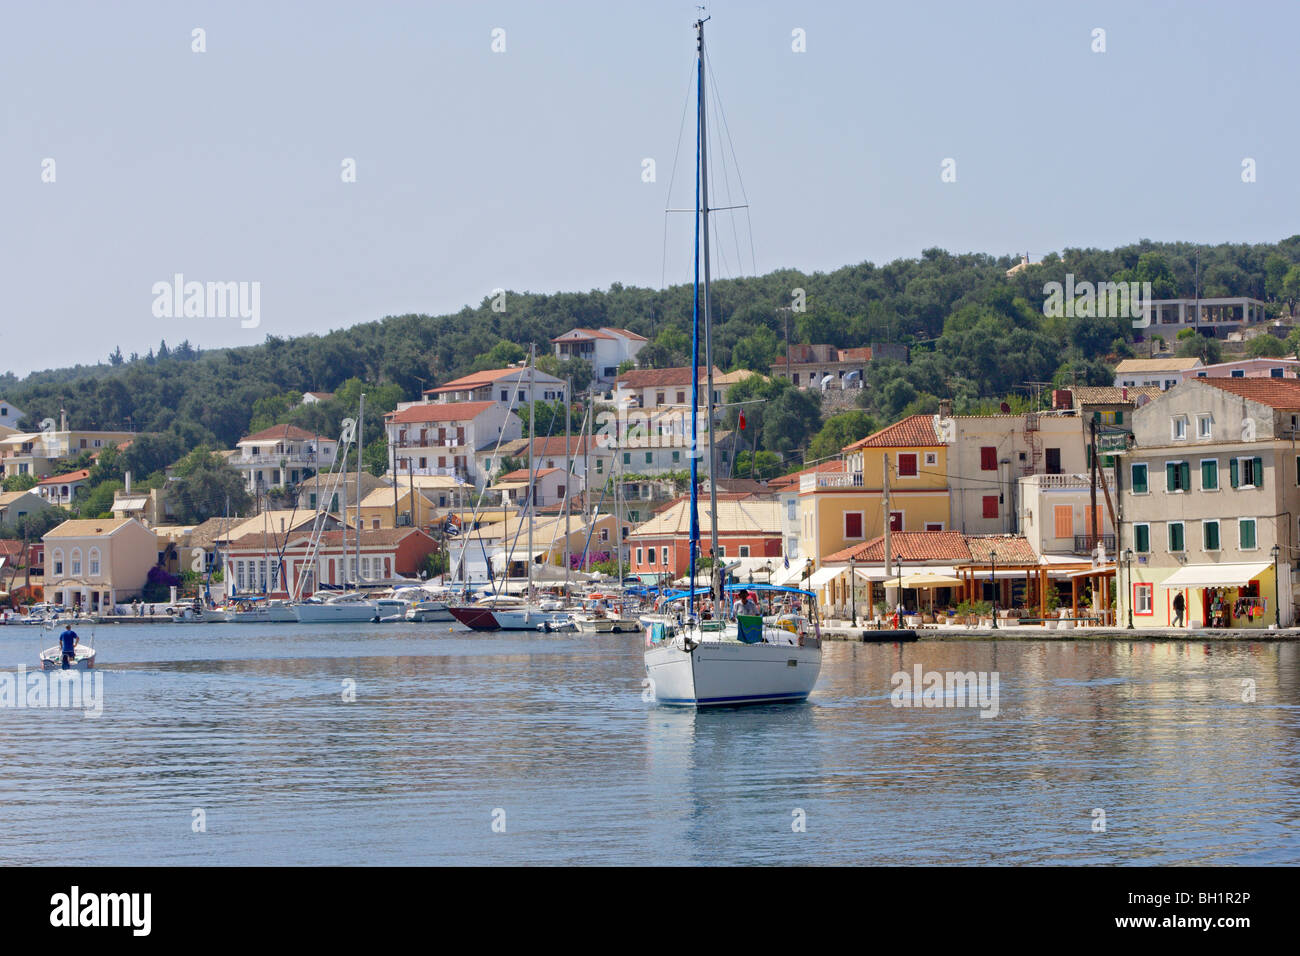 A boat leaving Gaios harbour, Paxos, Ionian Islands, Greece - Stock Image